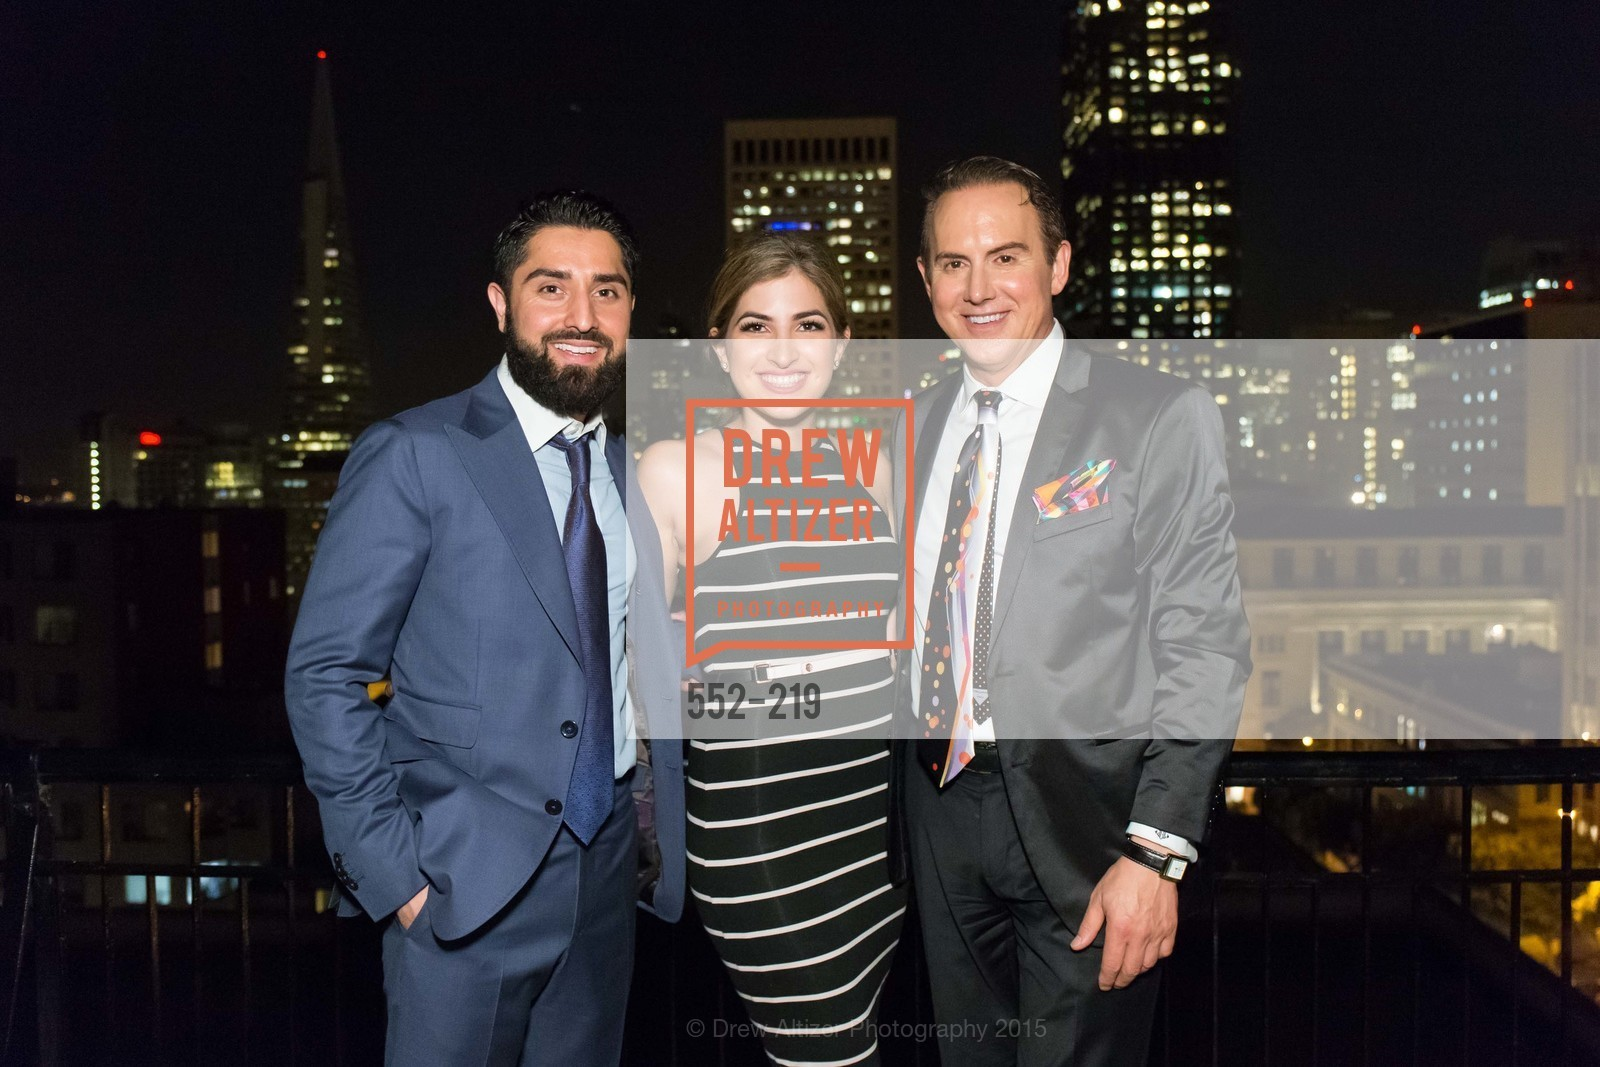 Roh Habibi, Shugufa Habibi, Joel Goodrich, Champagne Reception & Screening of Million Dollar Listing San Francisco, University Club. 800 Powell St, August 5th, 2015,Drew Altizer, Drew Altizer Photography, full-service agency, private events, San Francisco photographer, photographer california